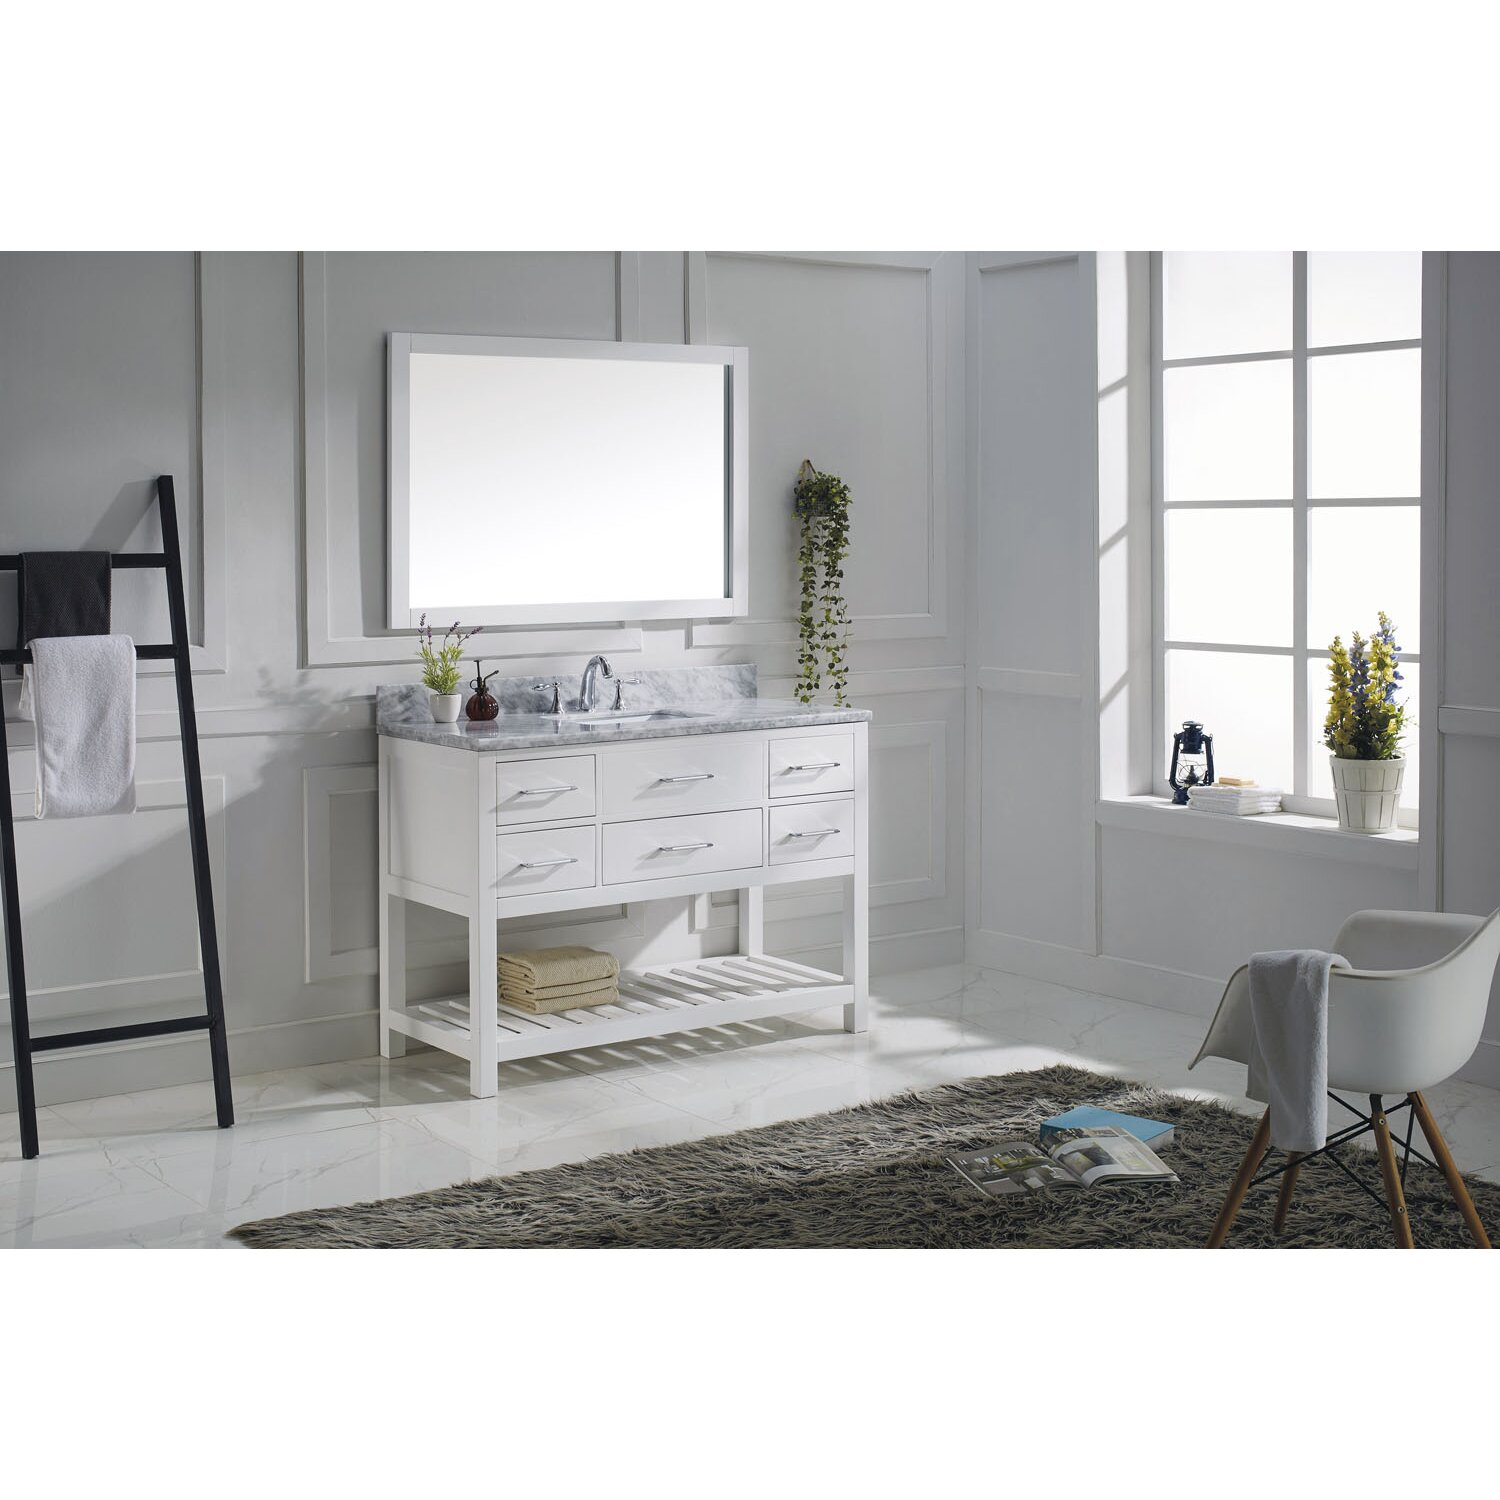 Image Result For Caroline Estate Single Bathroom Vanity